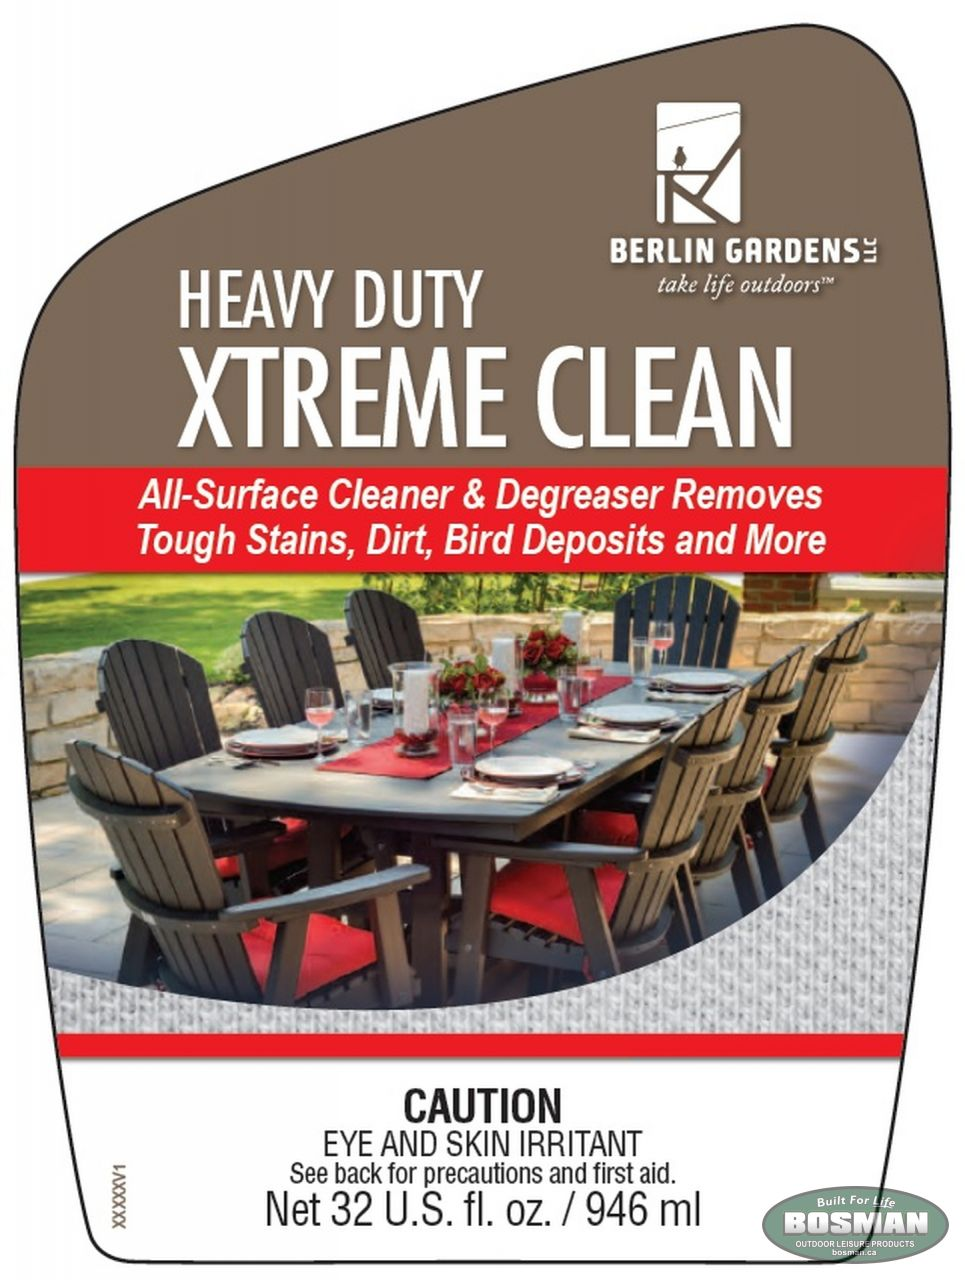 If You Are Looking For The Right Cleaning Solution For Your Poly Furniture  Consider Our Heavy Duty Extreme Clean Cleaner In A Convenient Spray Bottle.